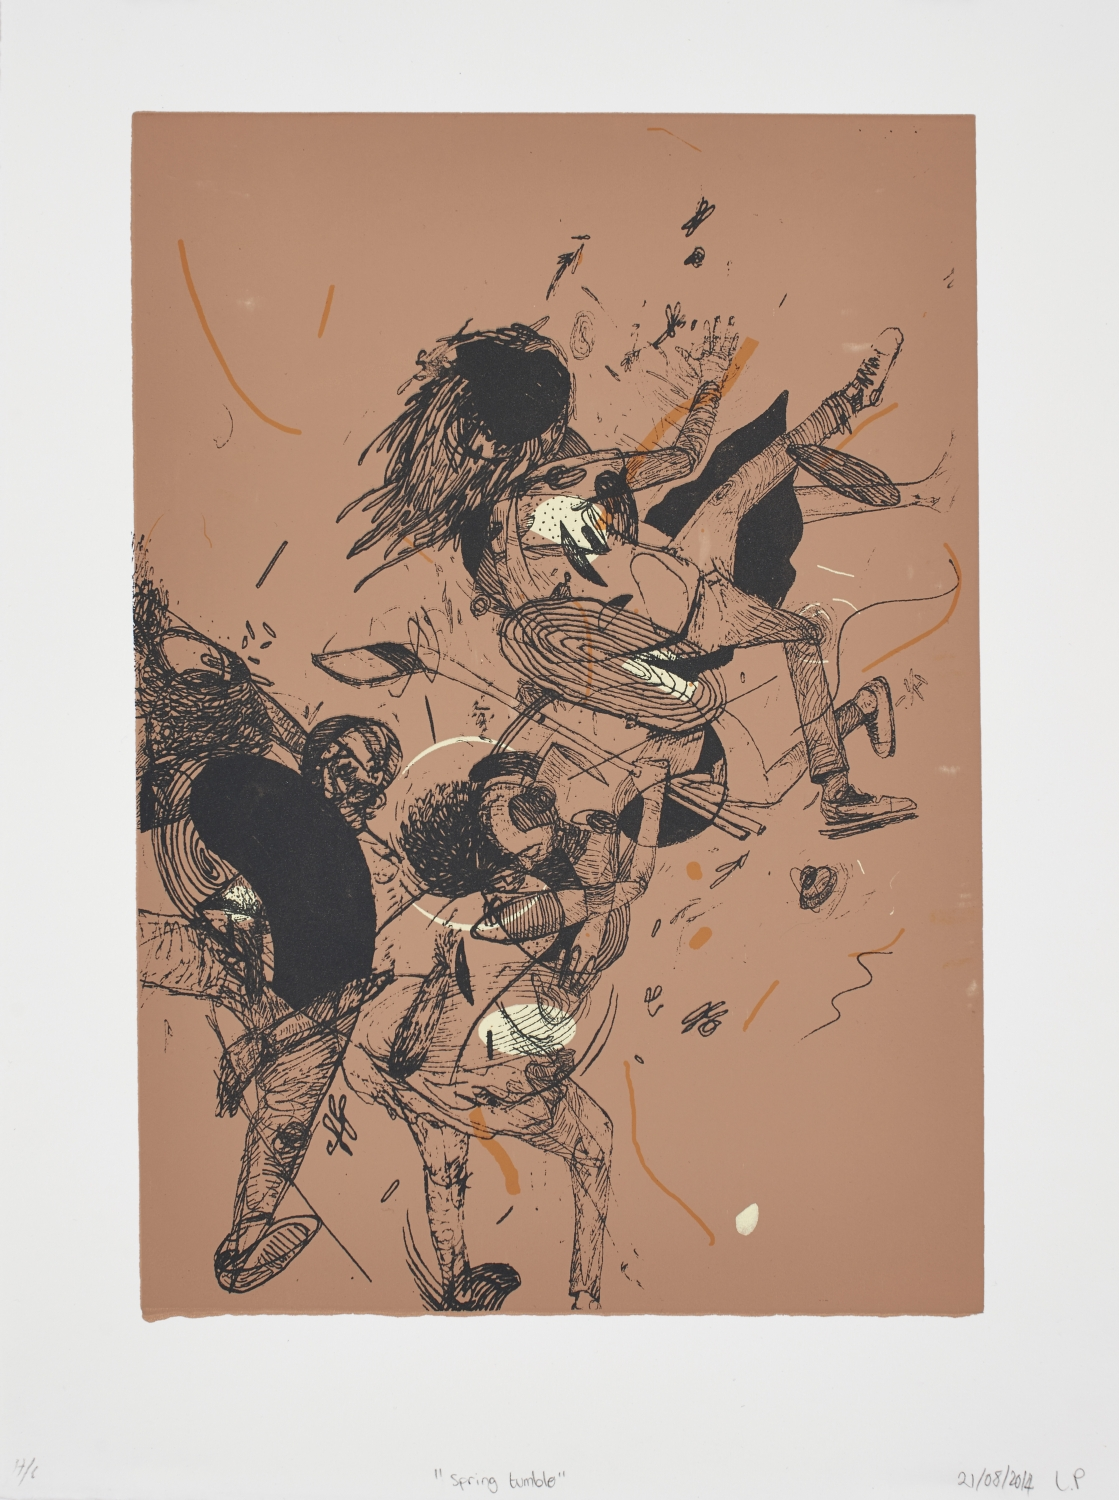 Spring Tumble   Lisolomzi Pikoli  Silkscreen on paper  Edition of 44  R 3 200.00 excl. vat